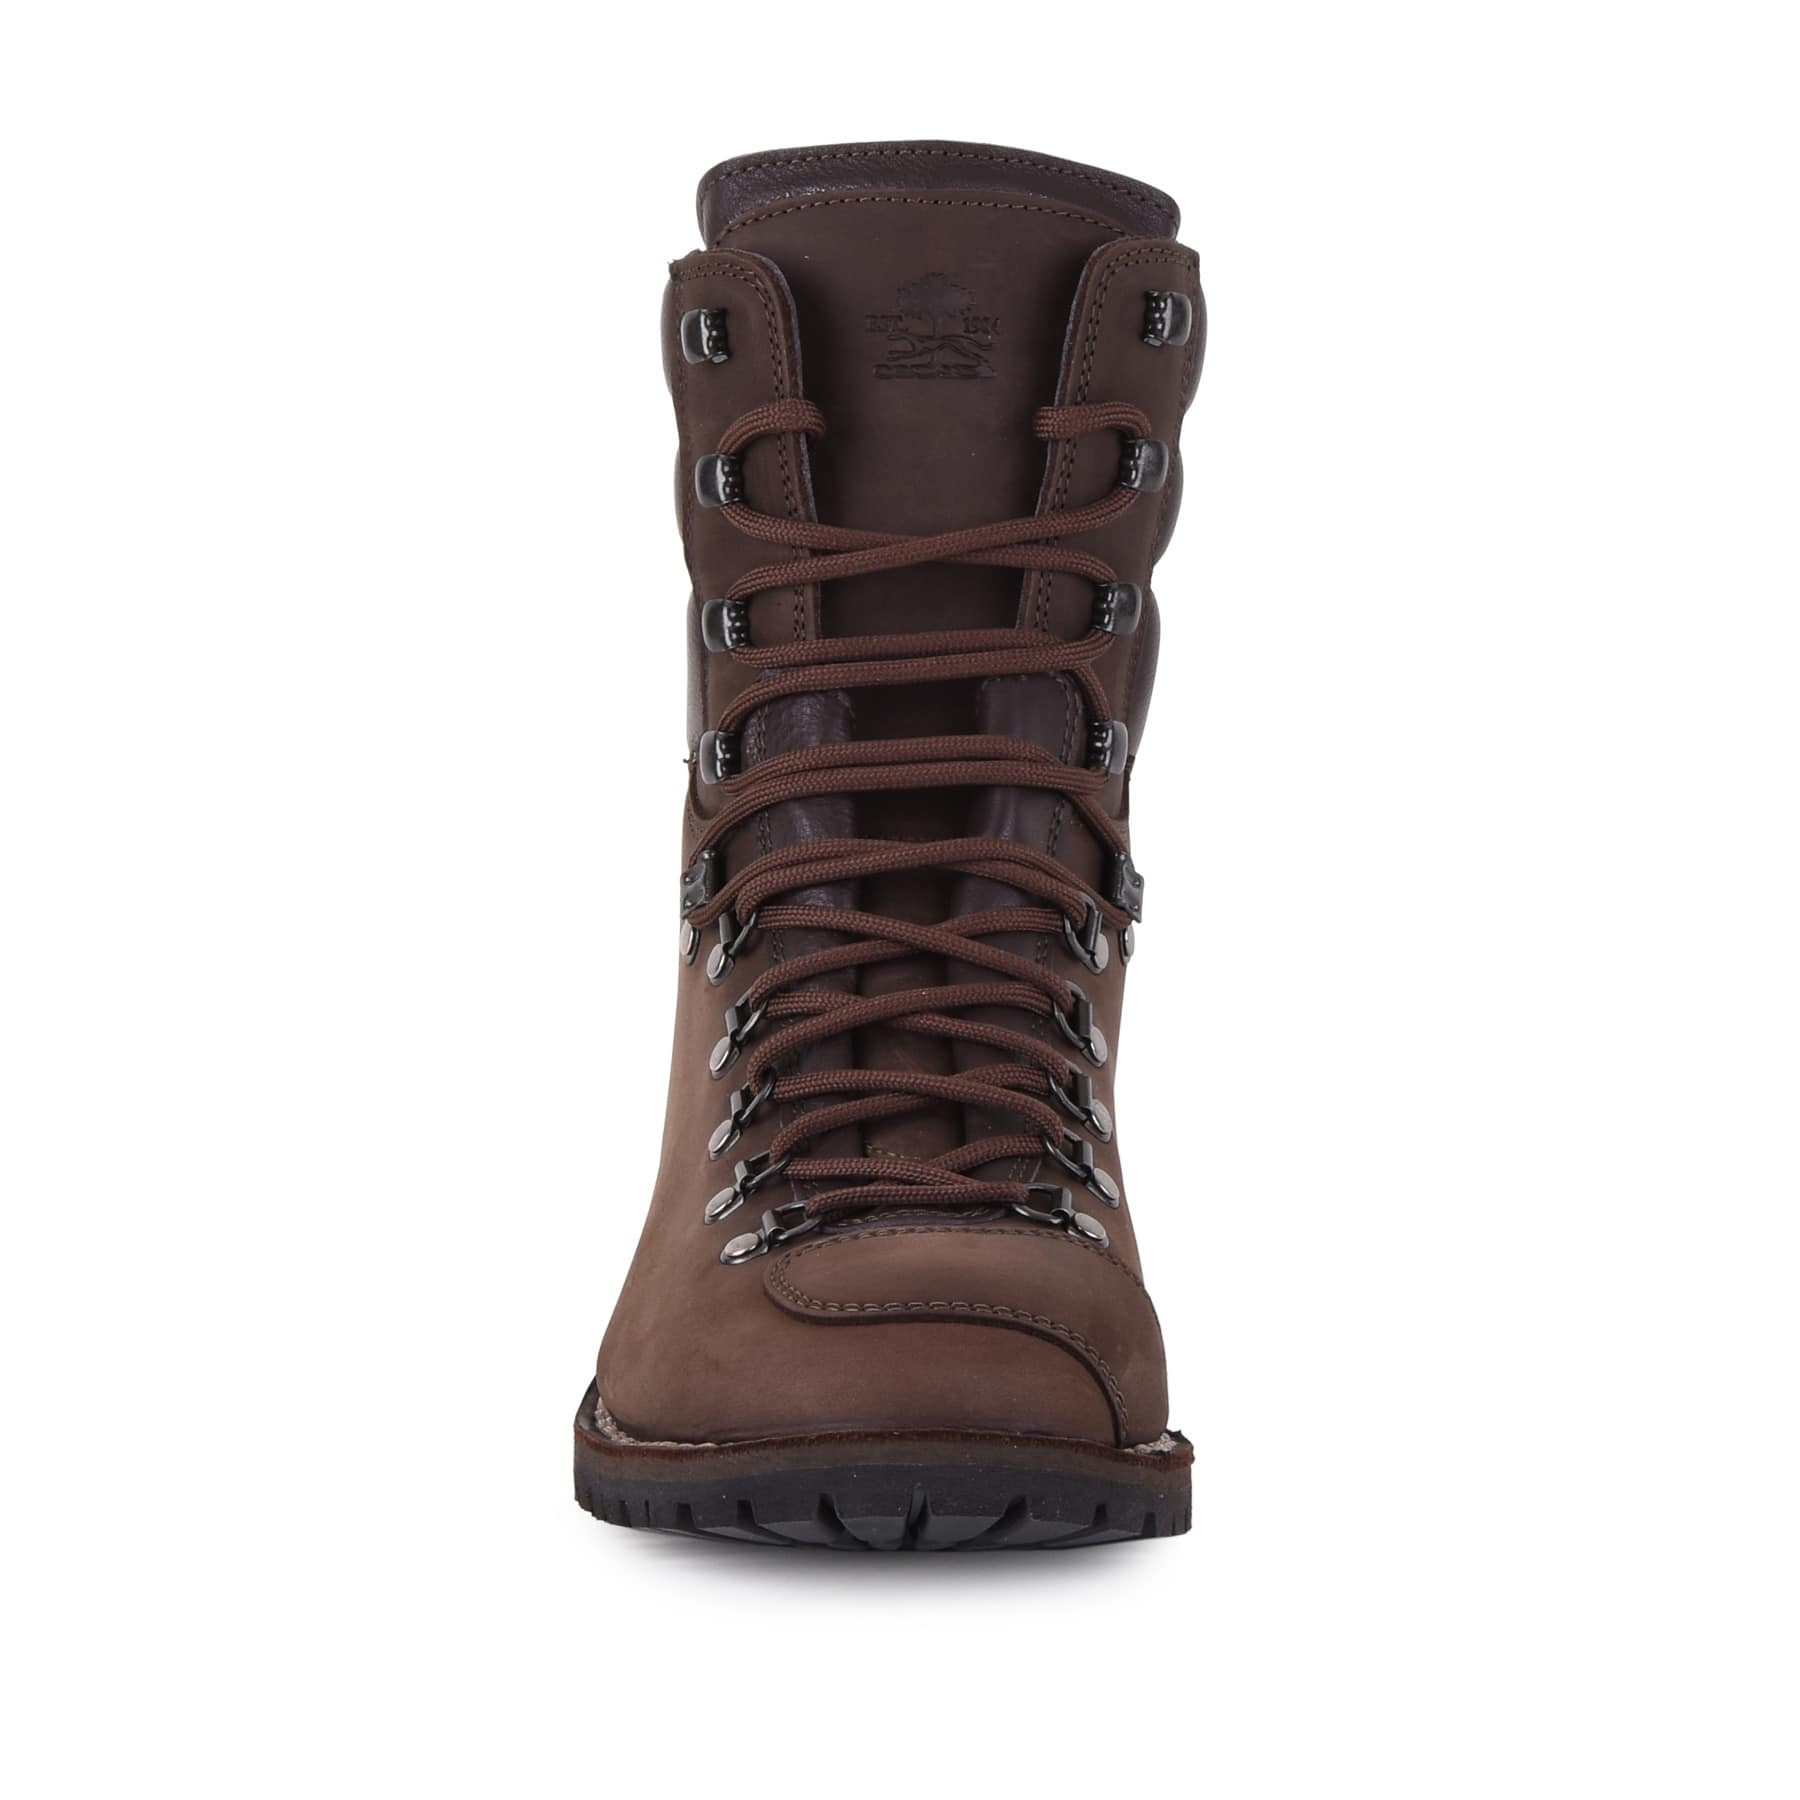 Biker Boot AdventureSE Denver Brown, dark brown gents boot, dark brown stitching